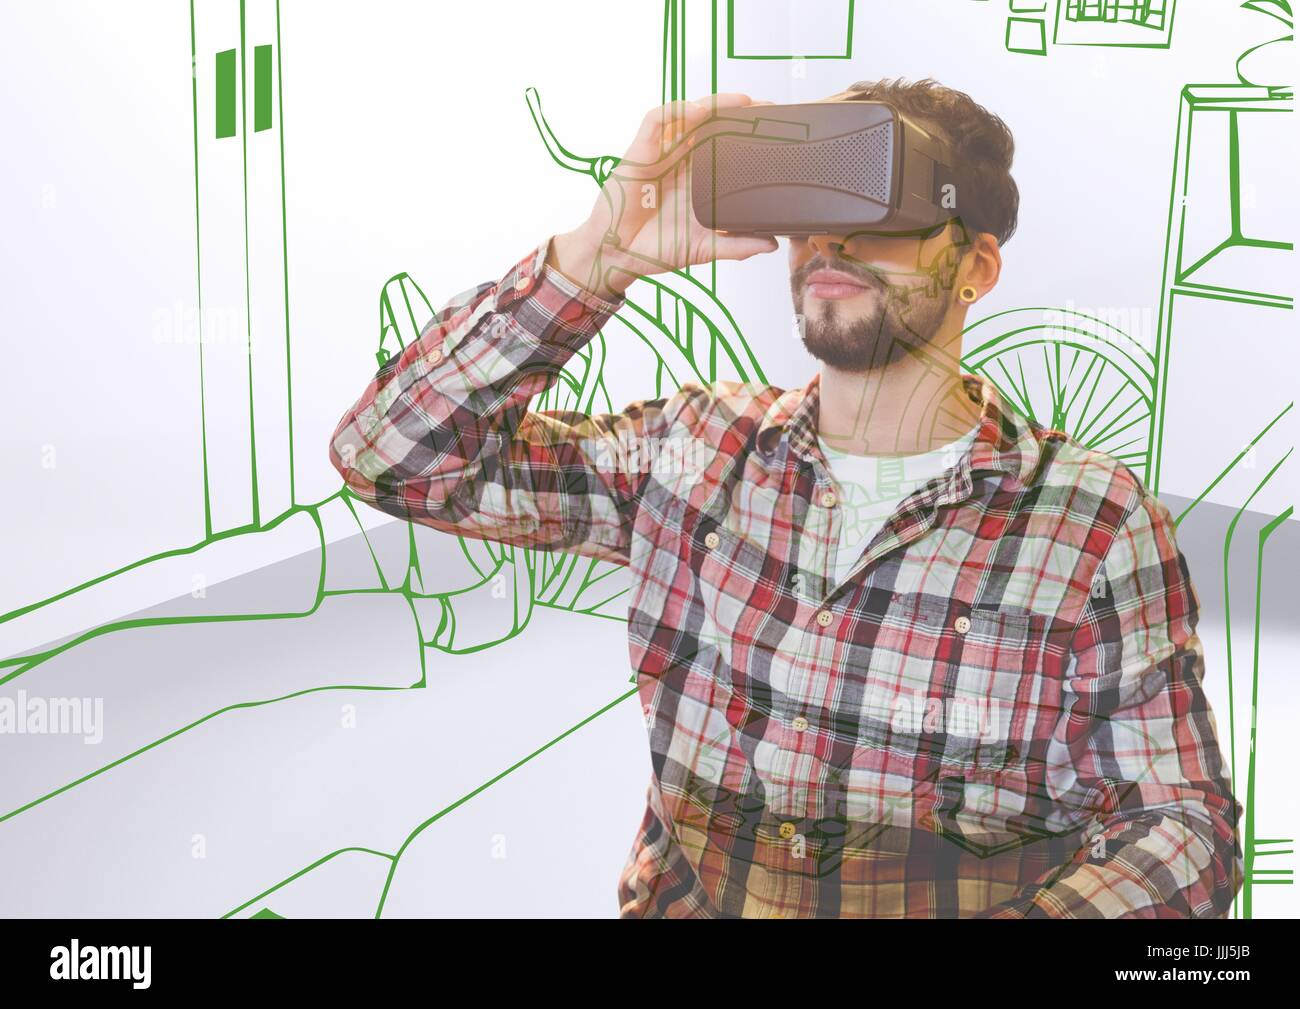 young man with 3D glasses overlap with office green lines - Stock Image